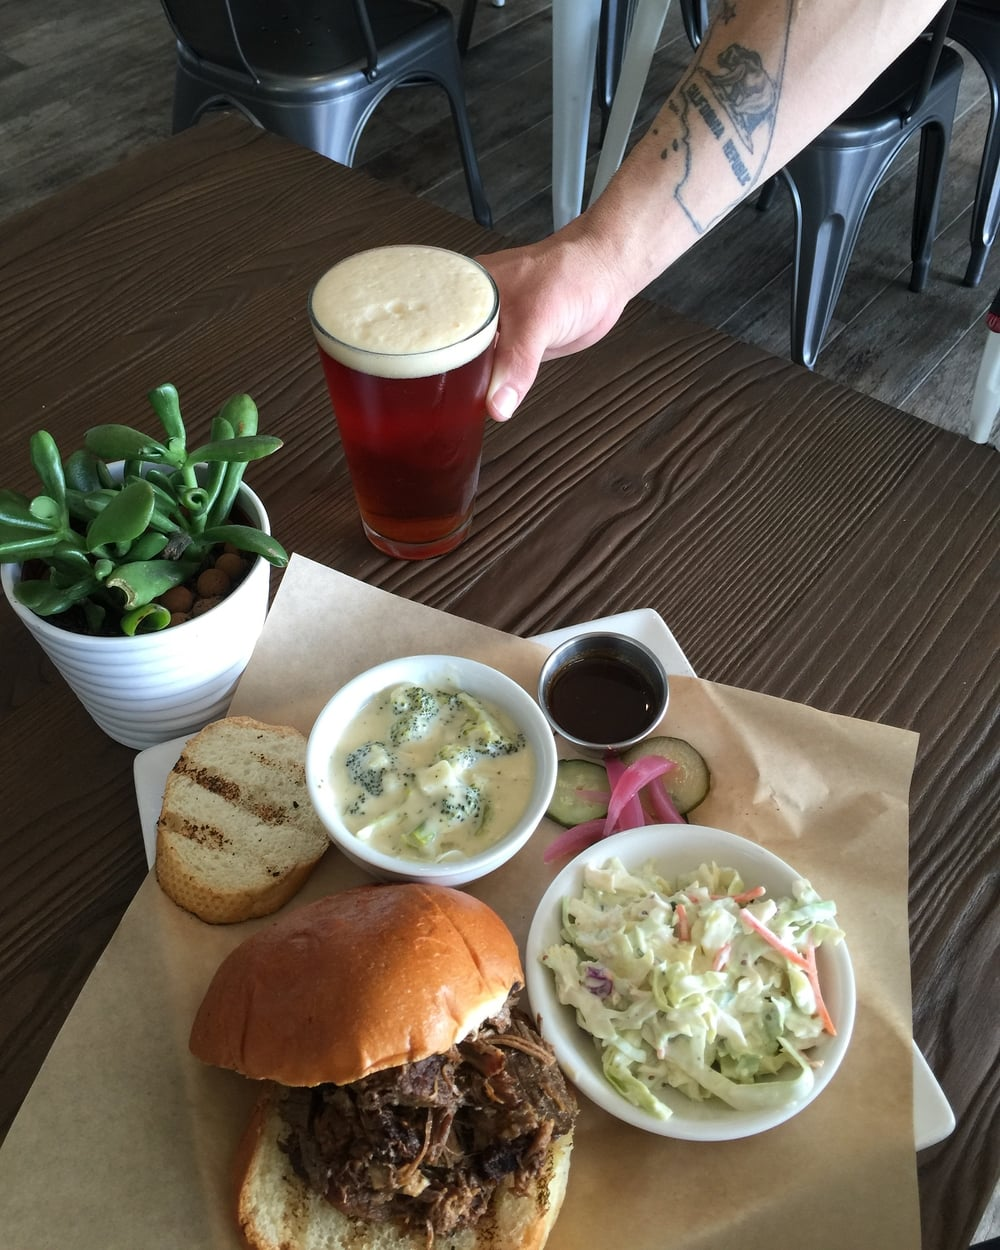 Smoked Brisket sandwich with cup of cheddar broccoli soup and a pint of Lagunitas Brown Sugga Ale.